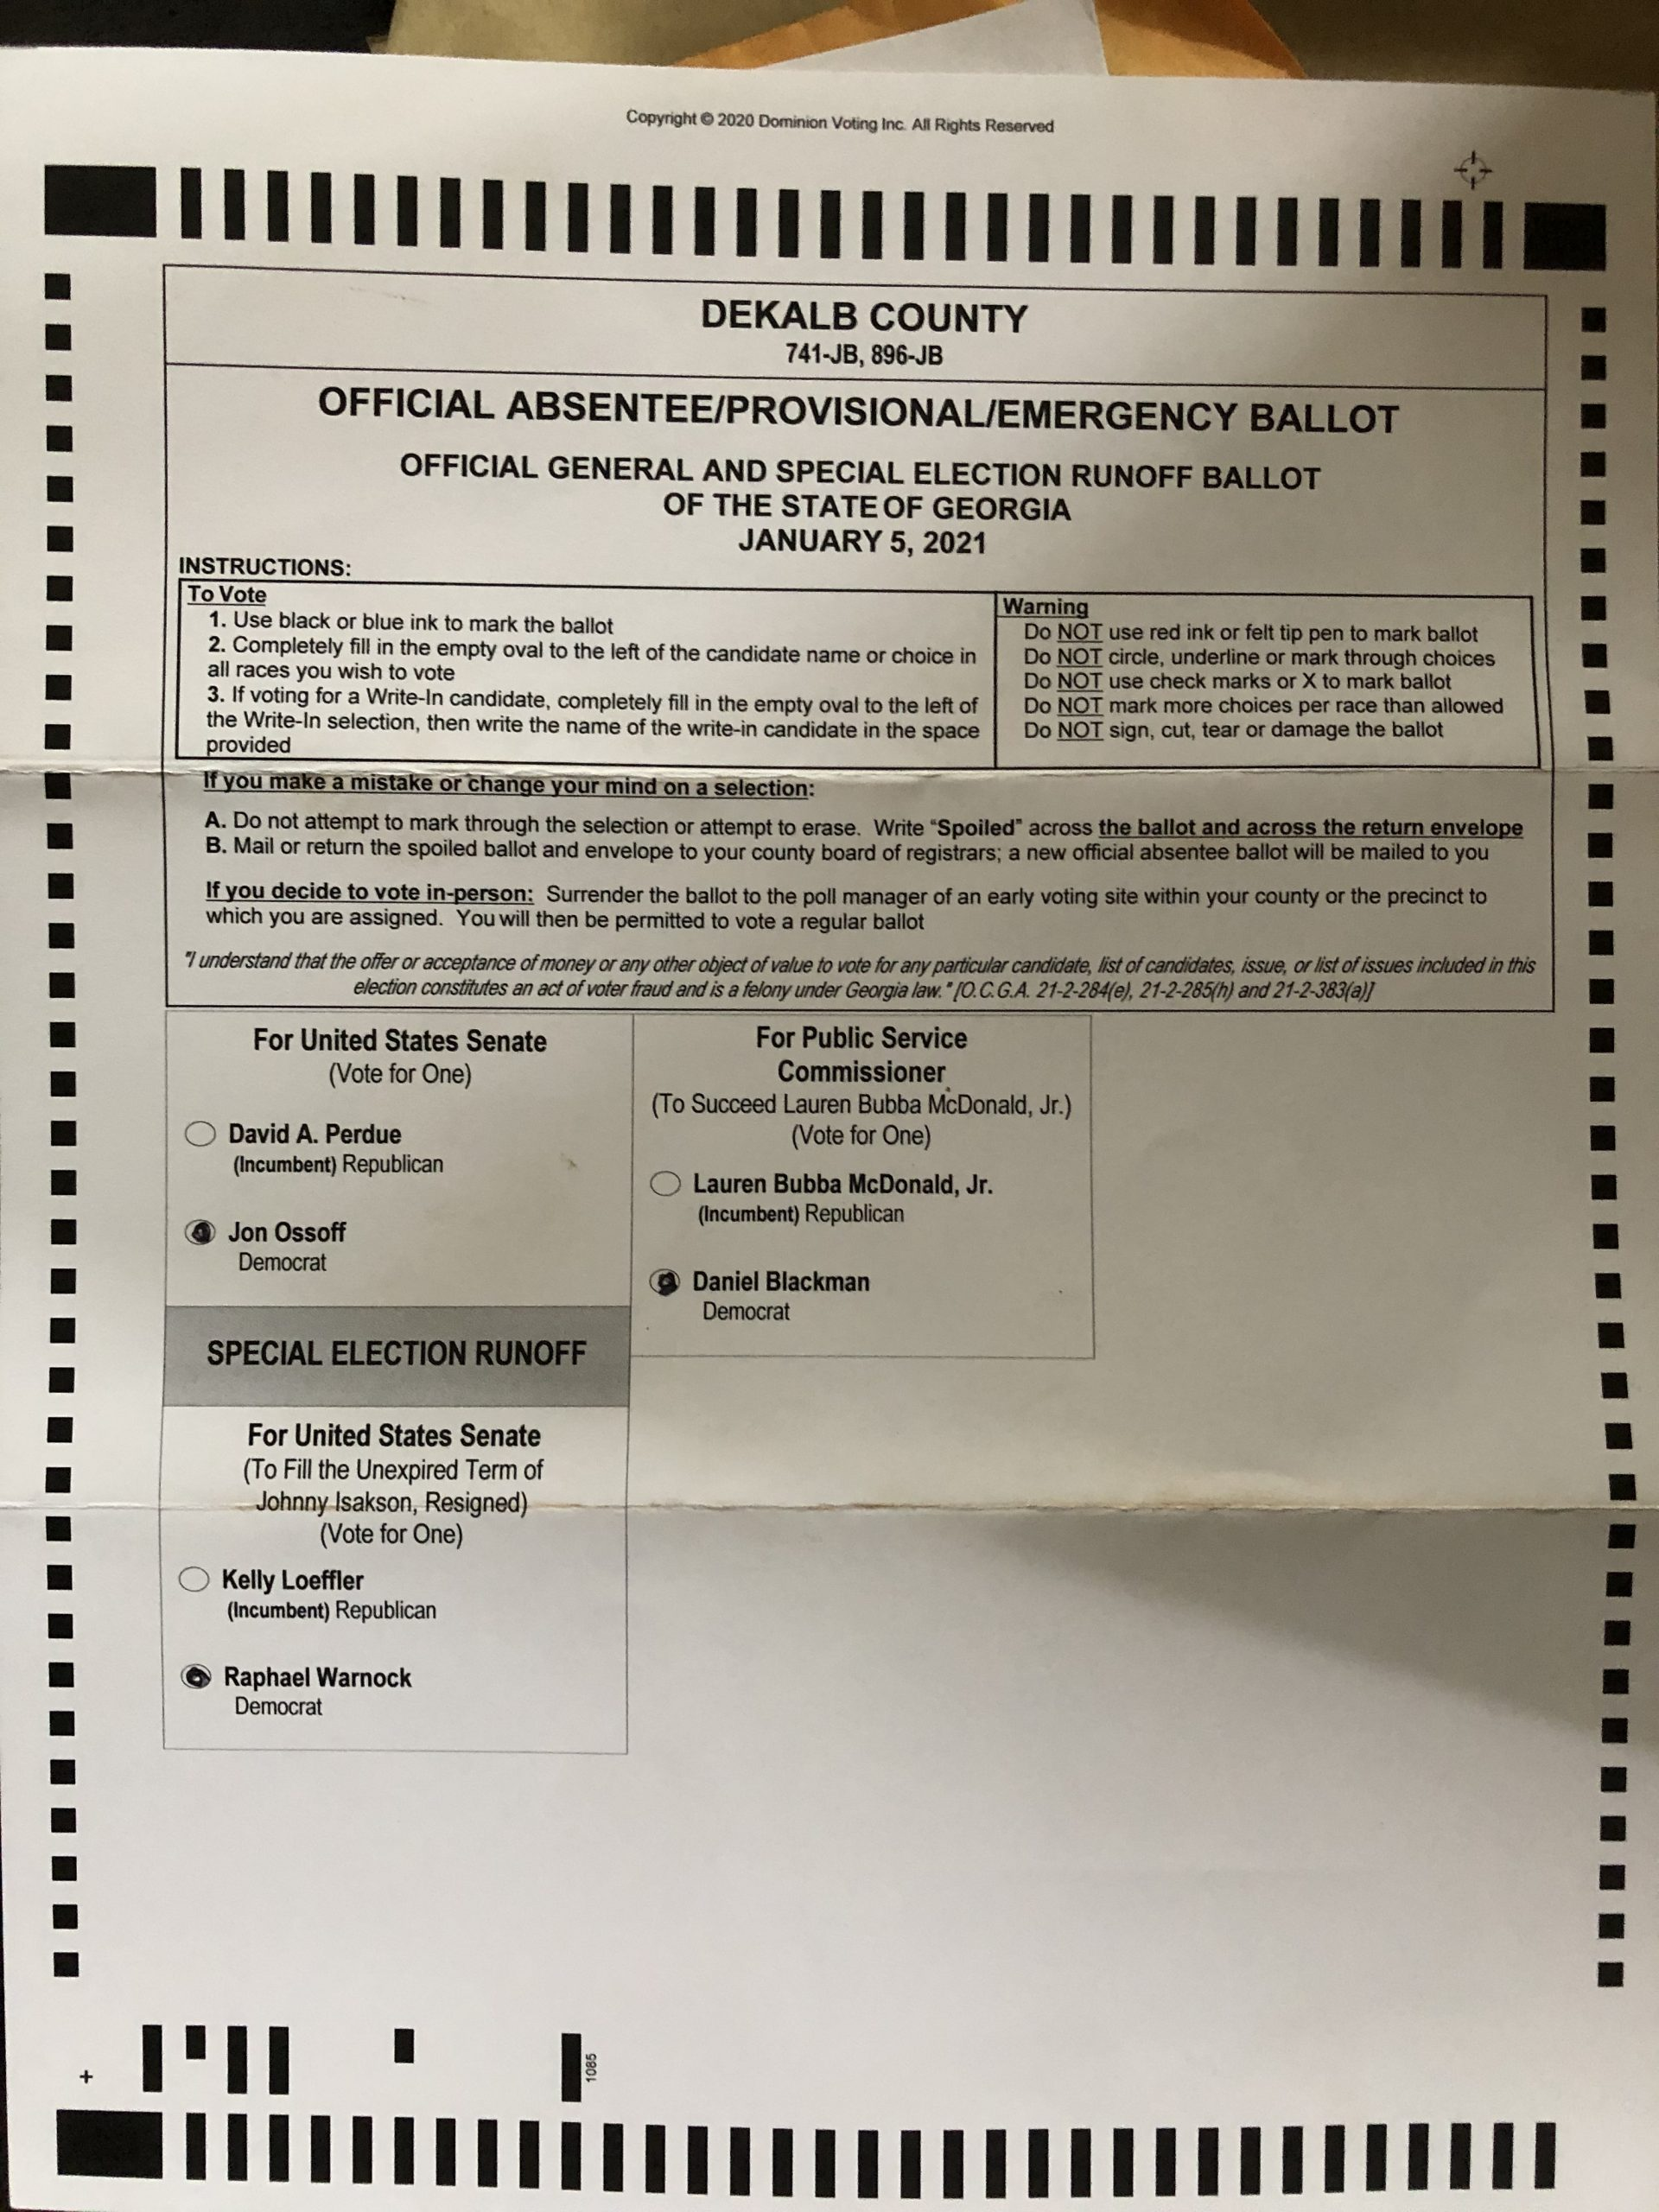 BREAKING: Evidence To Soon Be Presented To Citizens Grand Jury Of Interstate Conspiracy To Manufacture/Harvest Counterfeit Ballots For Use In 2020 Election - CD Media